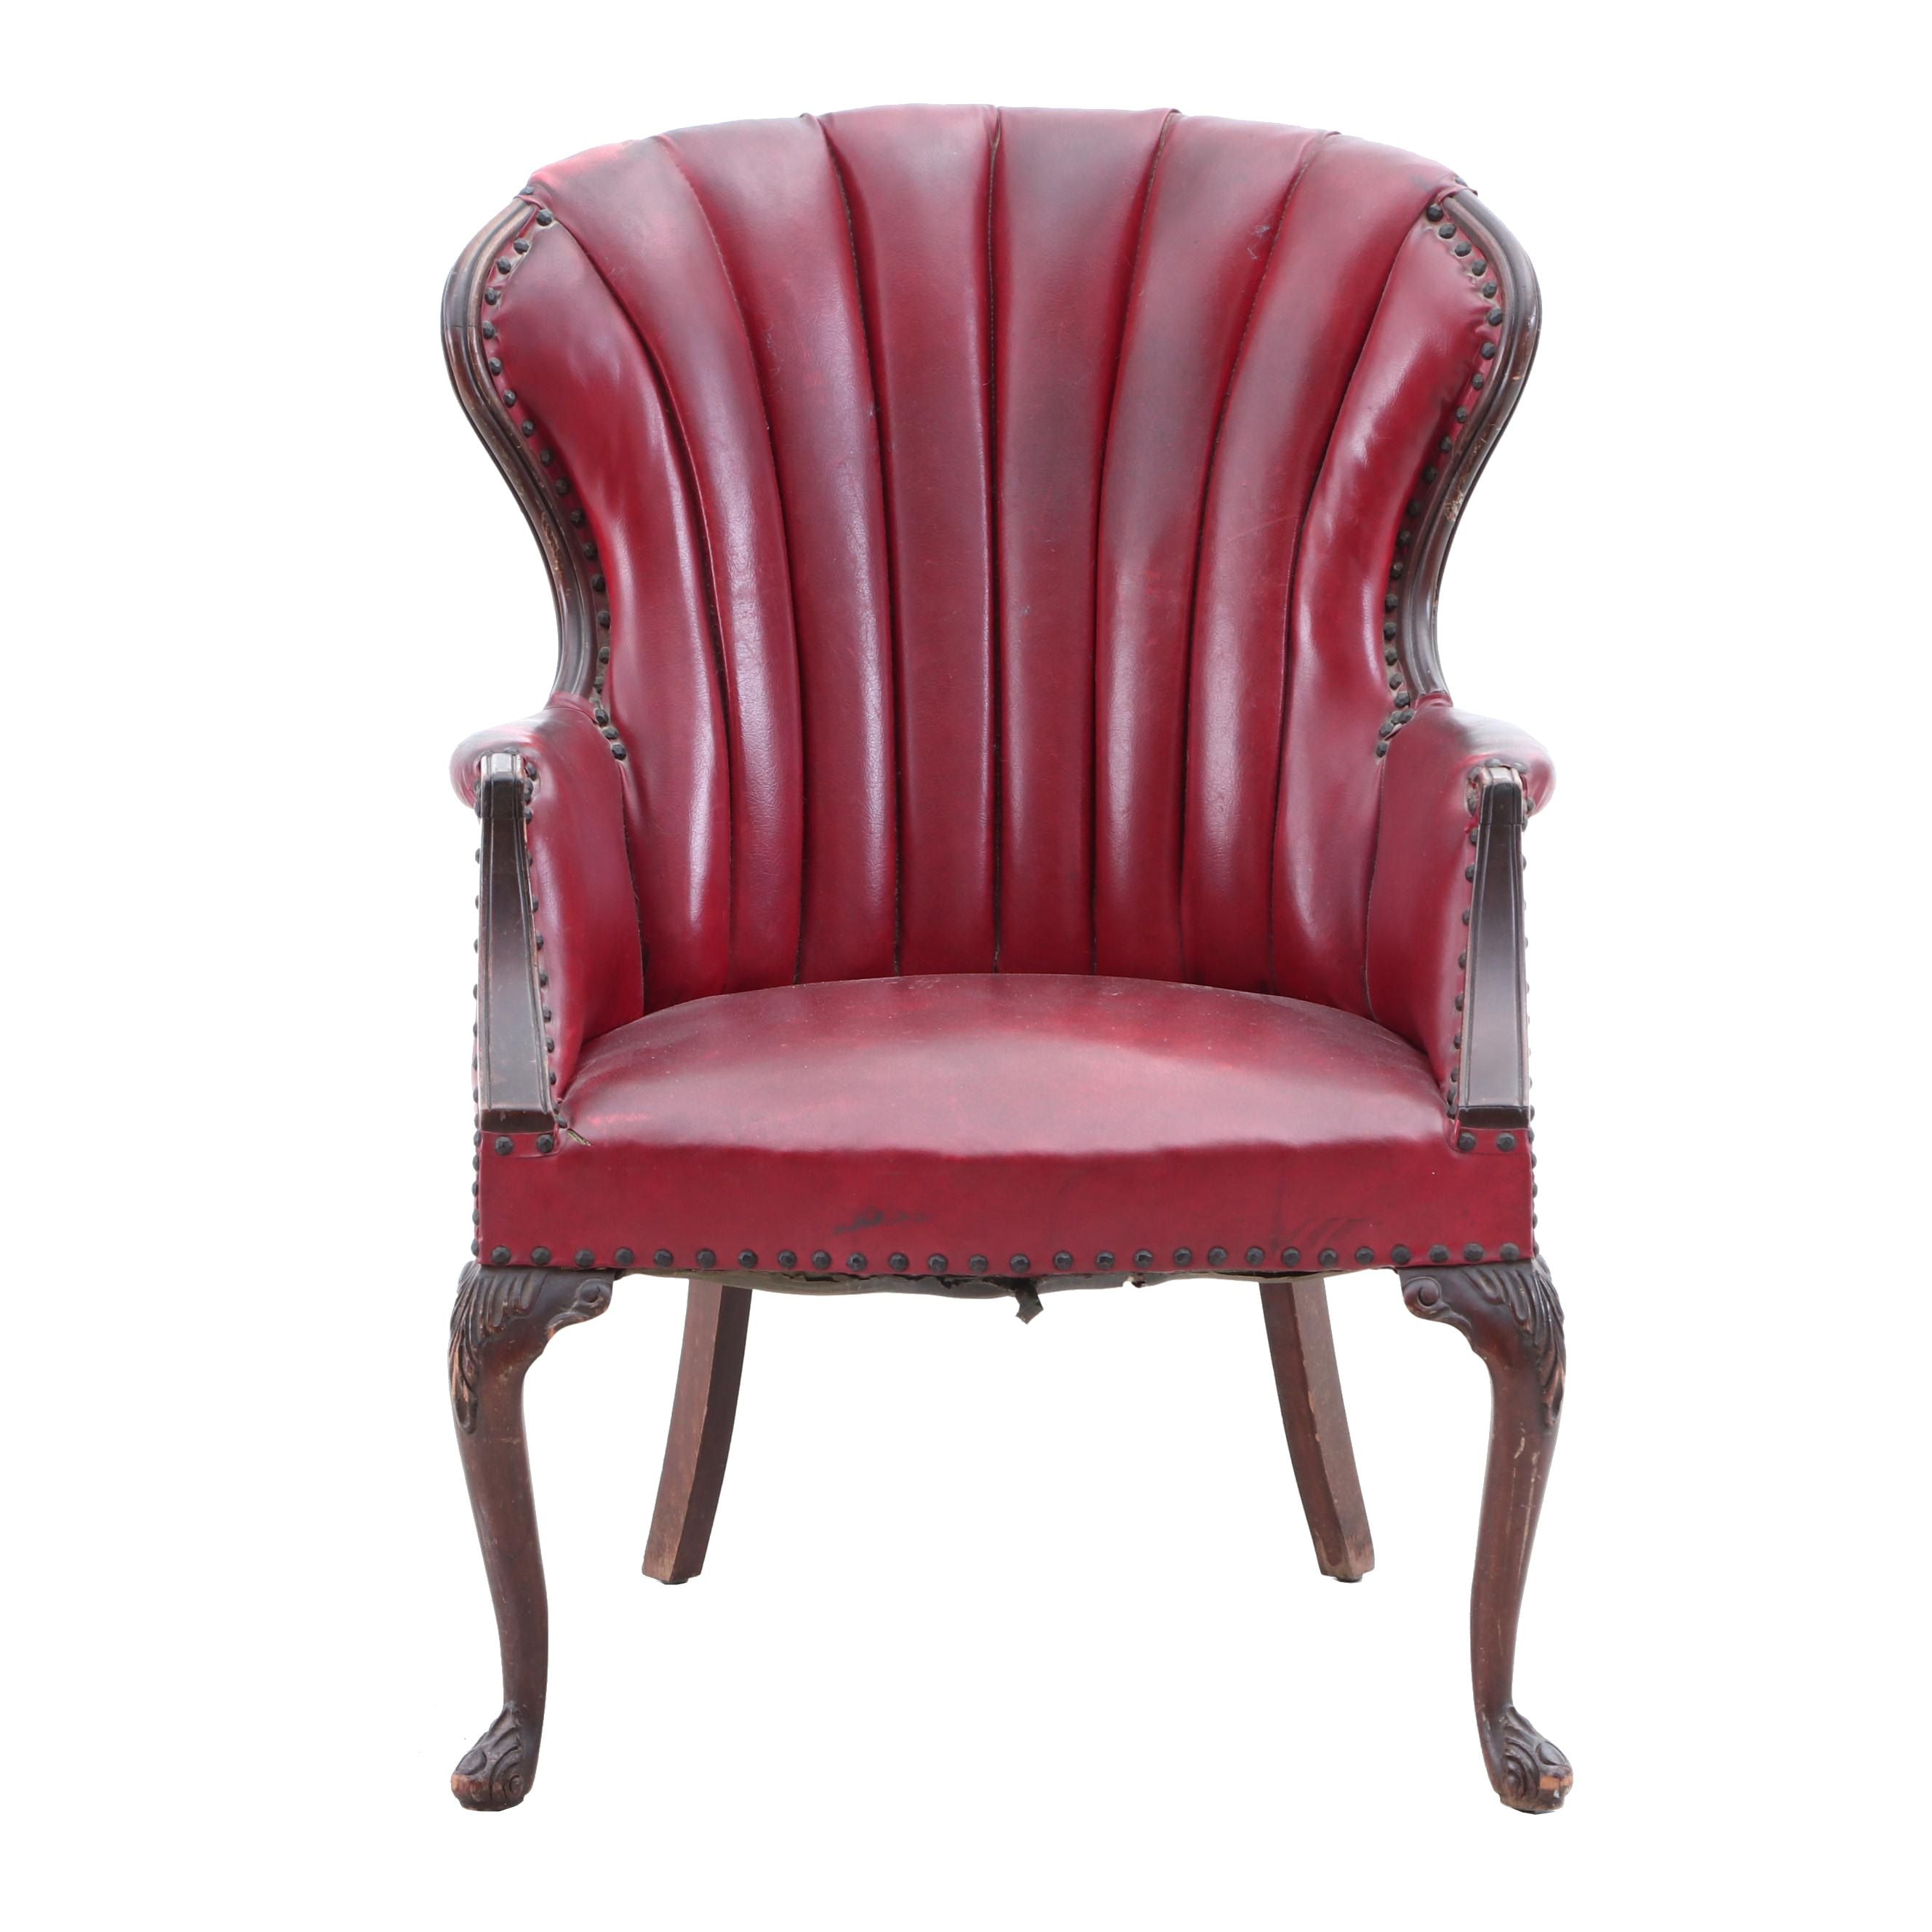 Antique Channel Tufted Neoclassical Wingback Chair